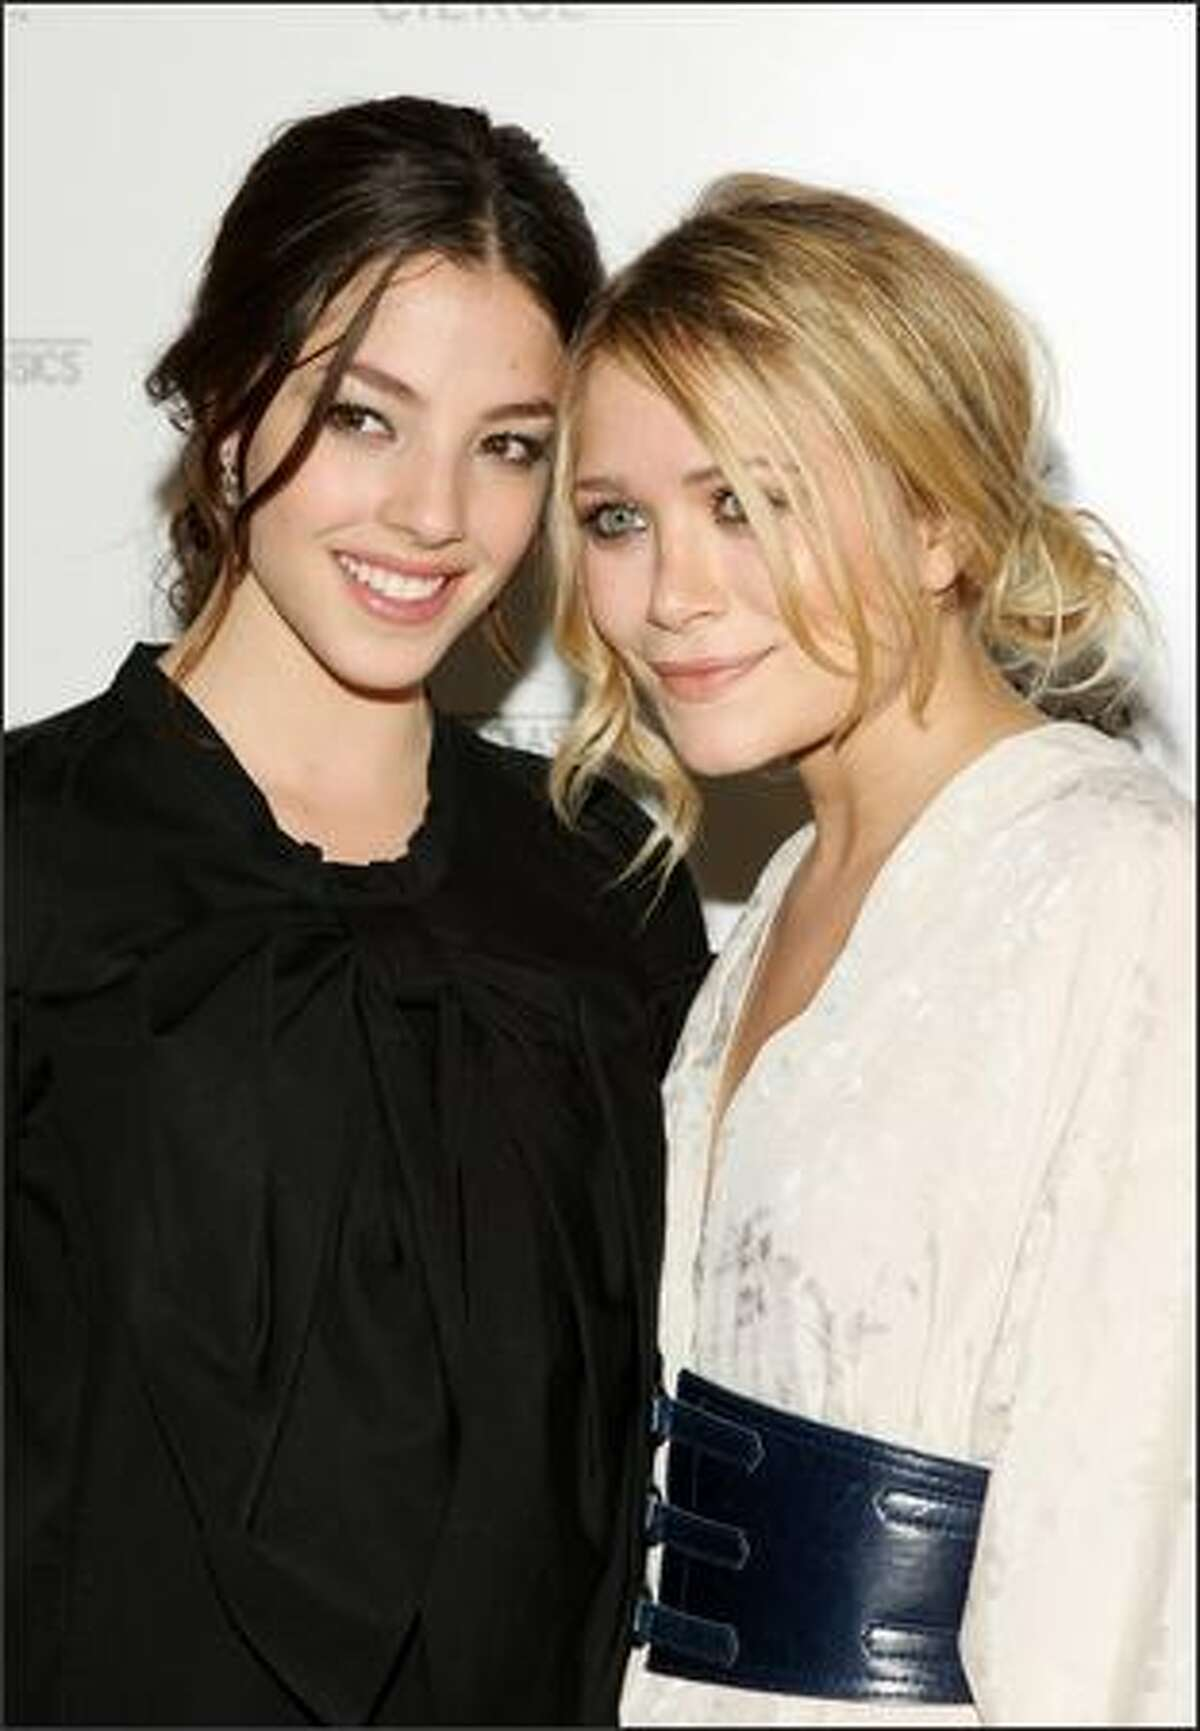 Actors Olivia Thirlby and Mary-Kate Olsen attend a screening of